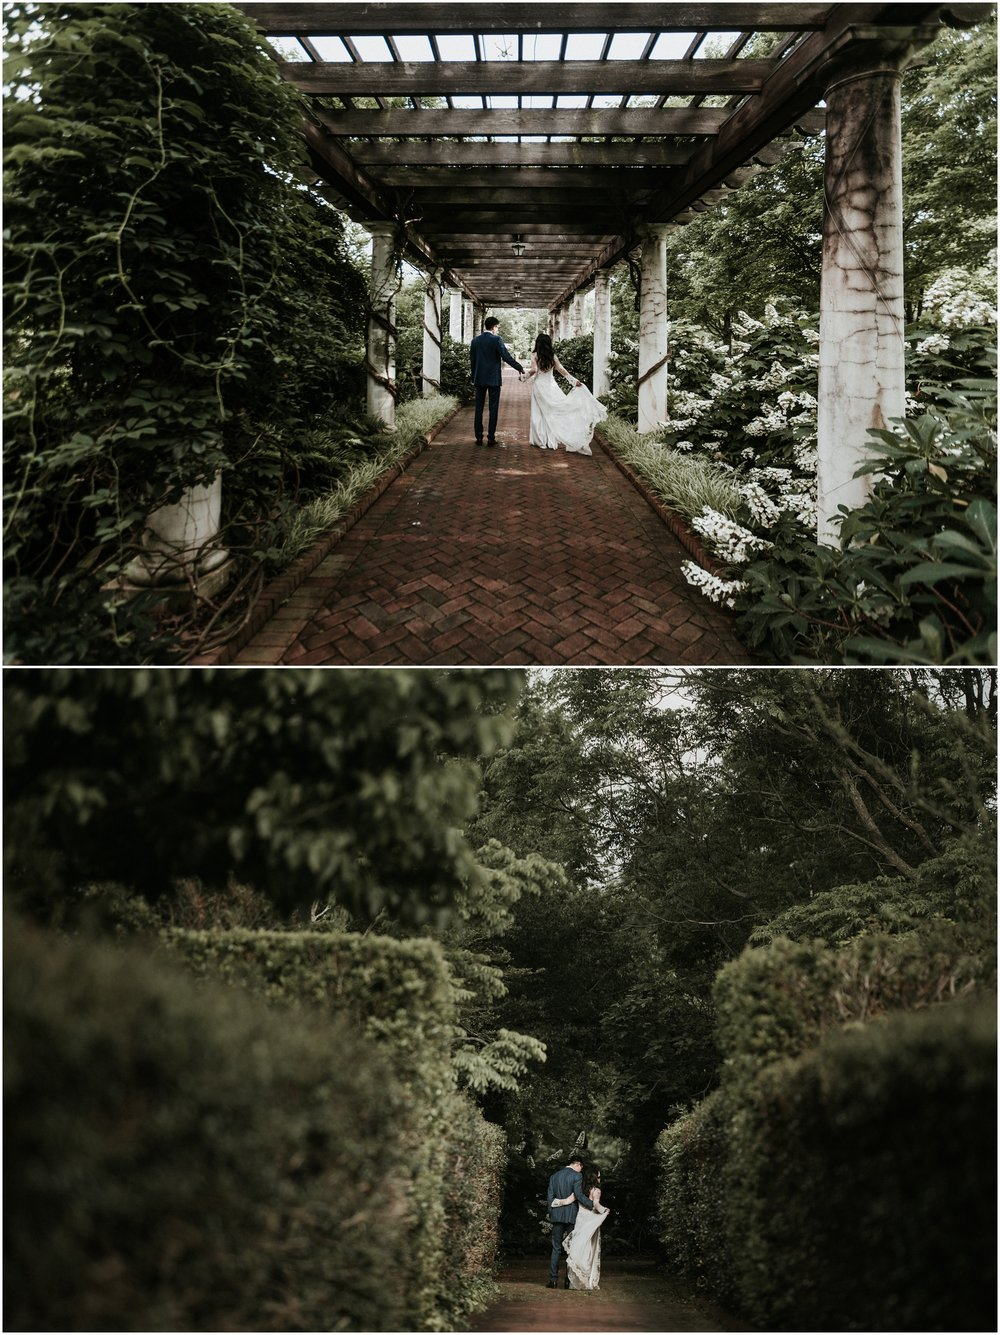 Daniel-Stowe-weddings-avonne-photography43.JPG